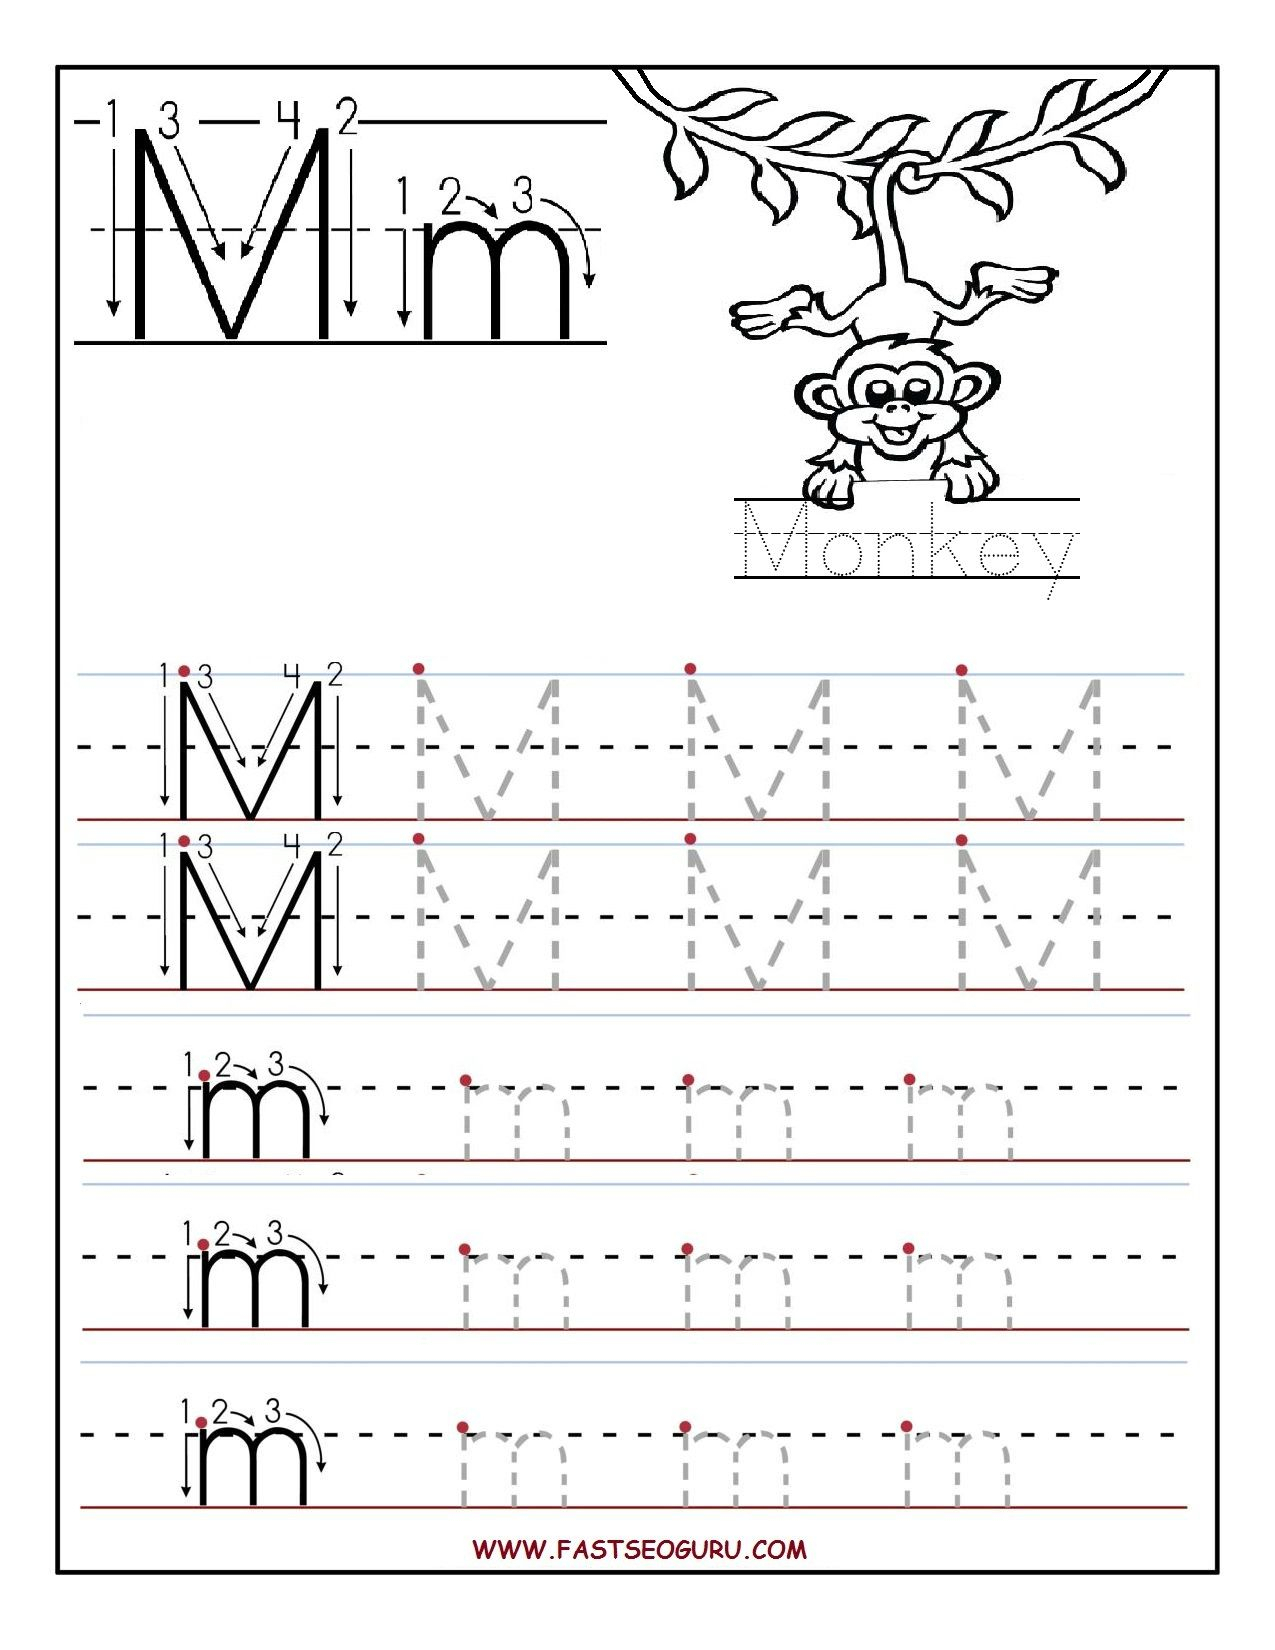 Printable Letter M Tracing Worksheets For Preschool with regard to Letter M Worksheets For Kinder